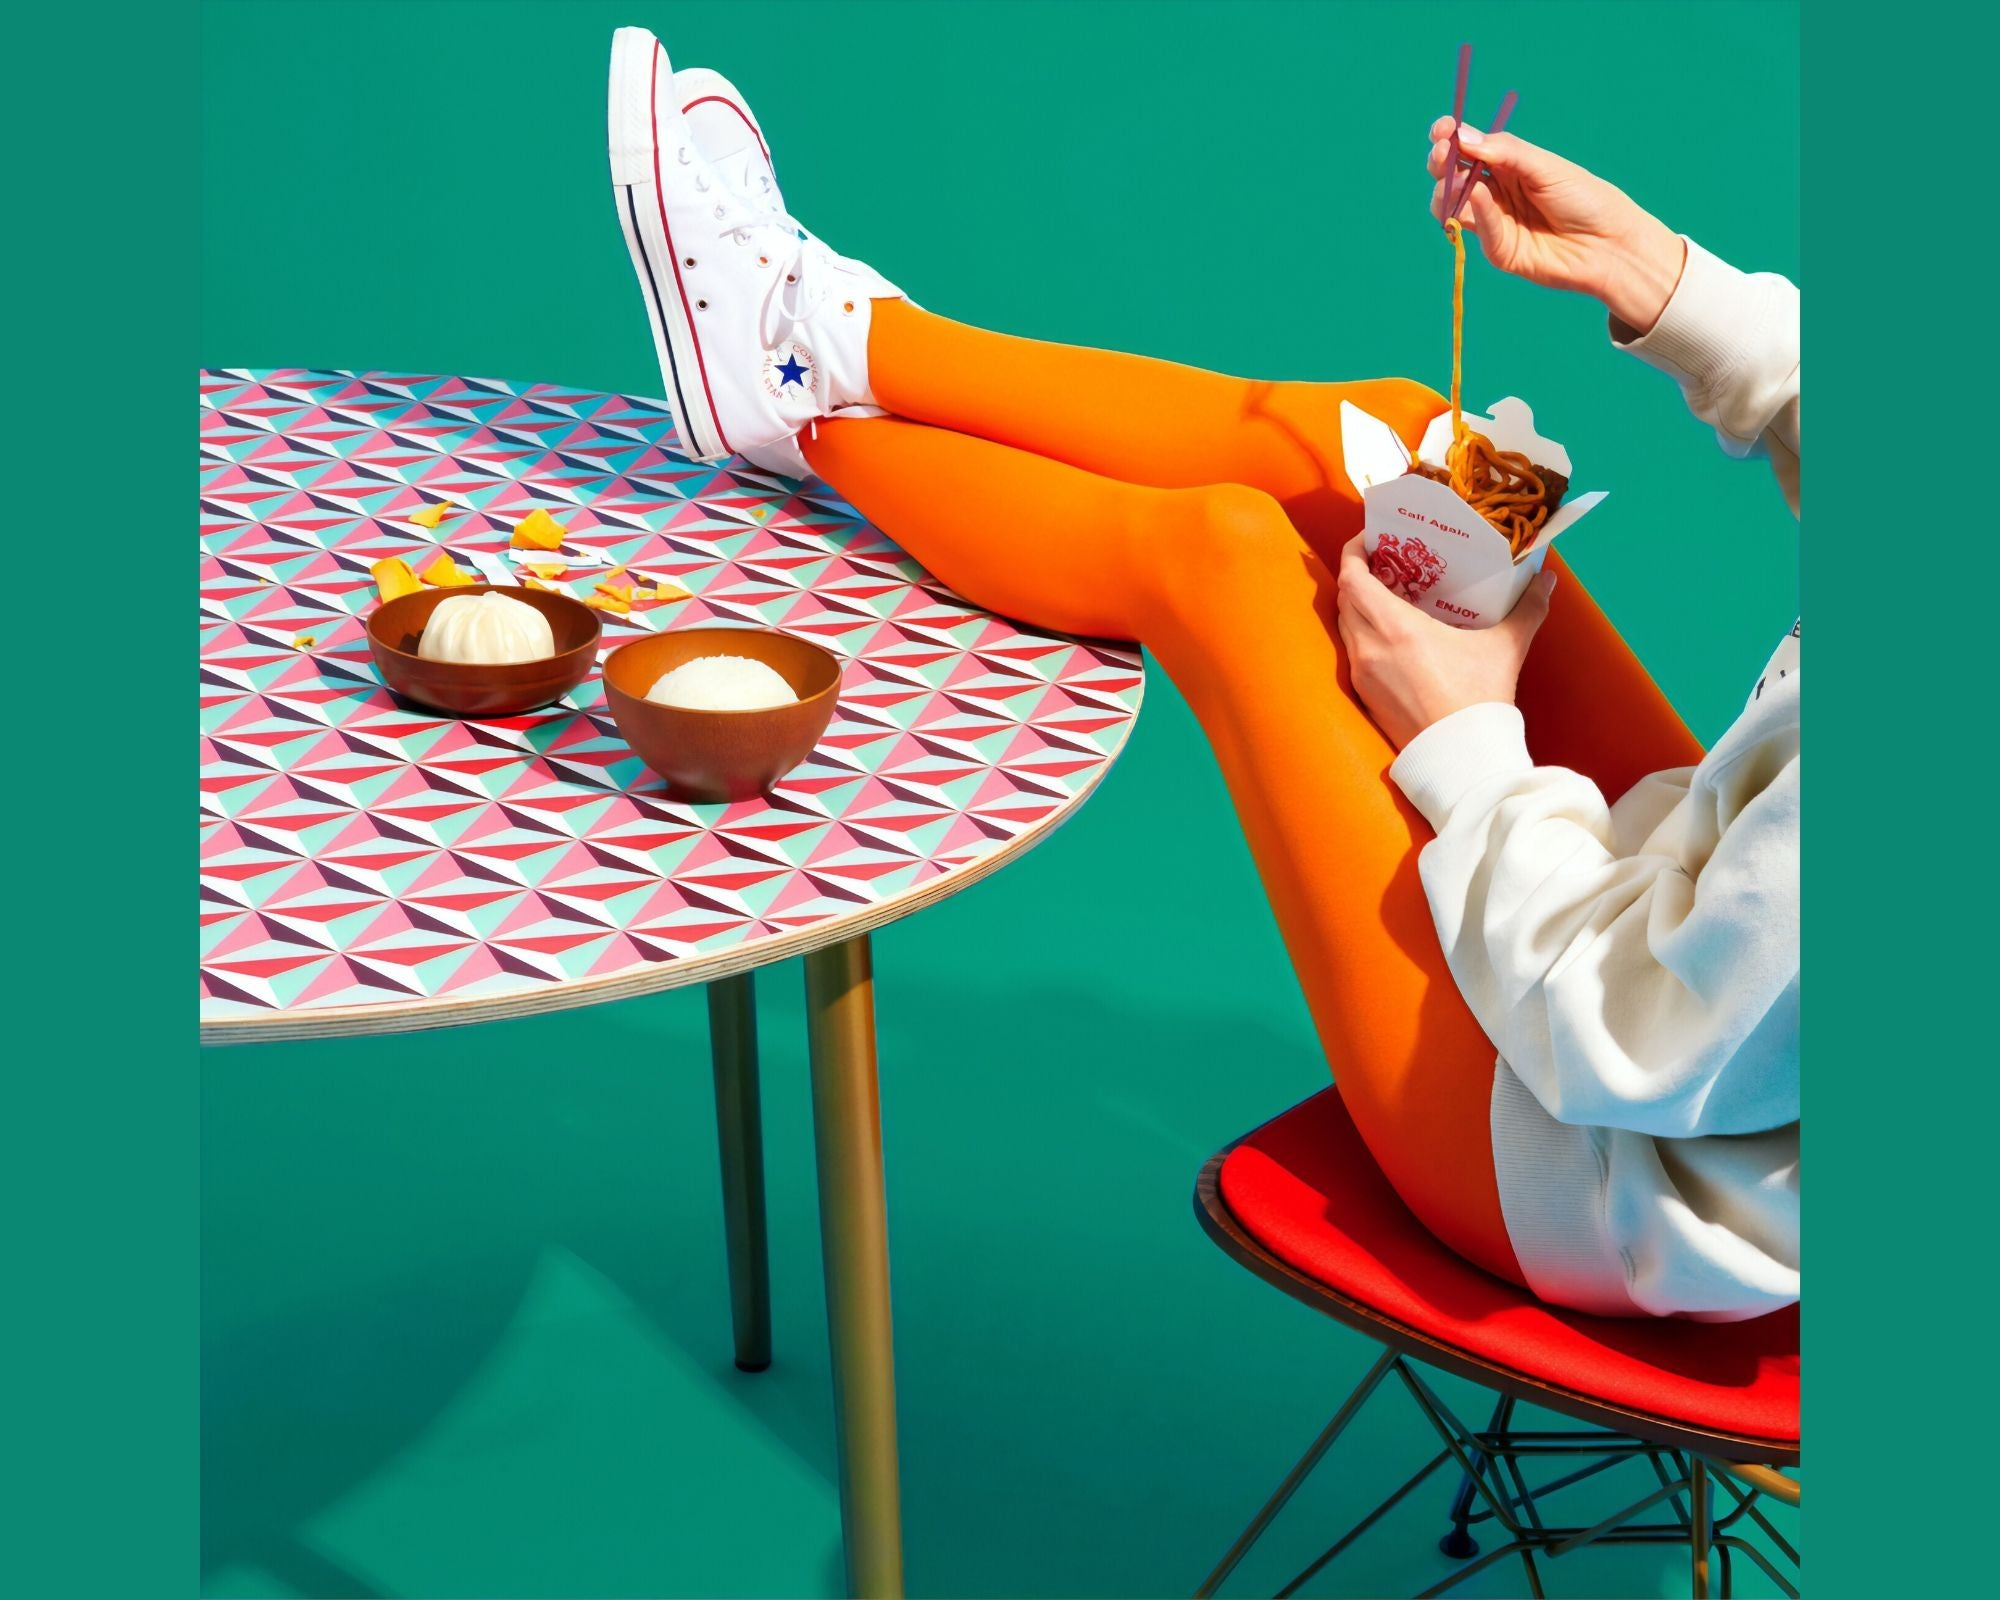 Image of girl with feet on the table eating take away food